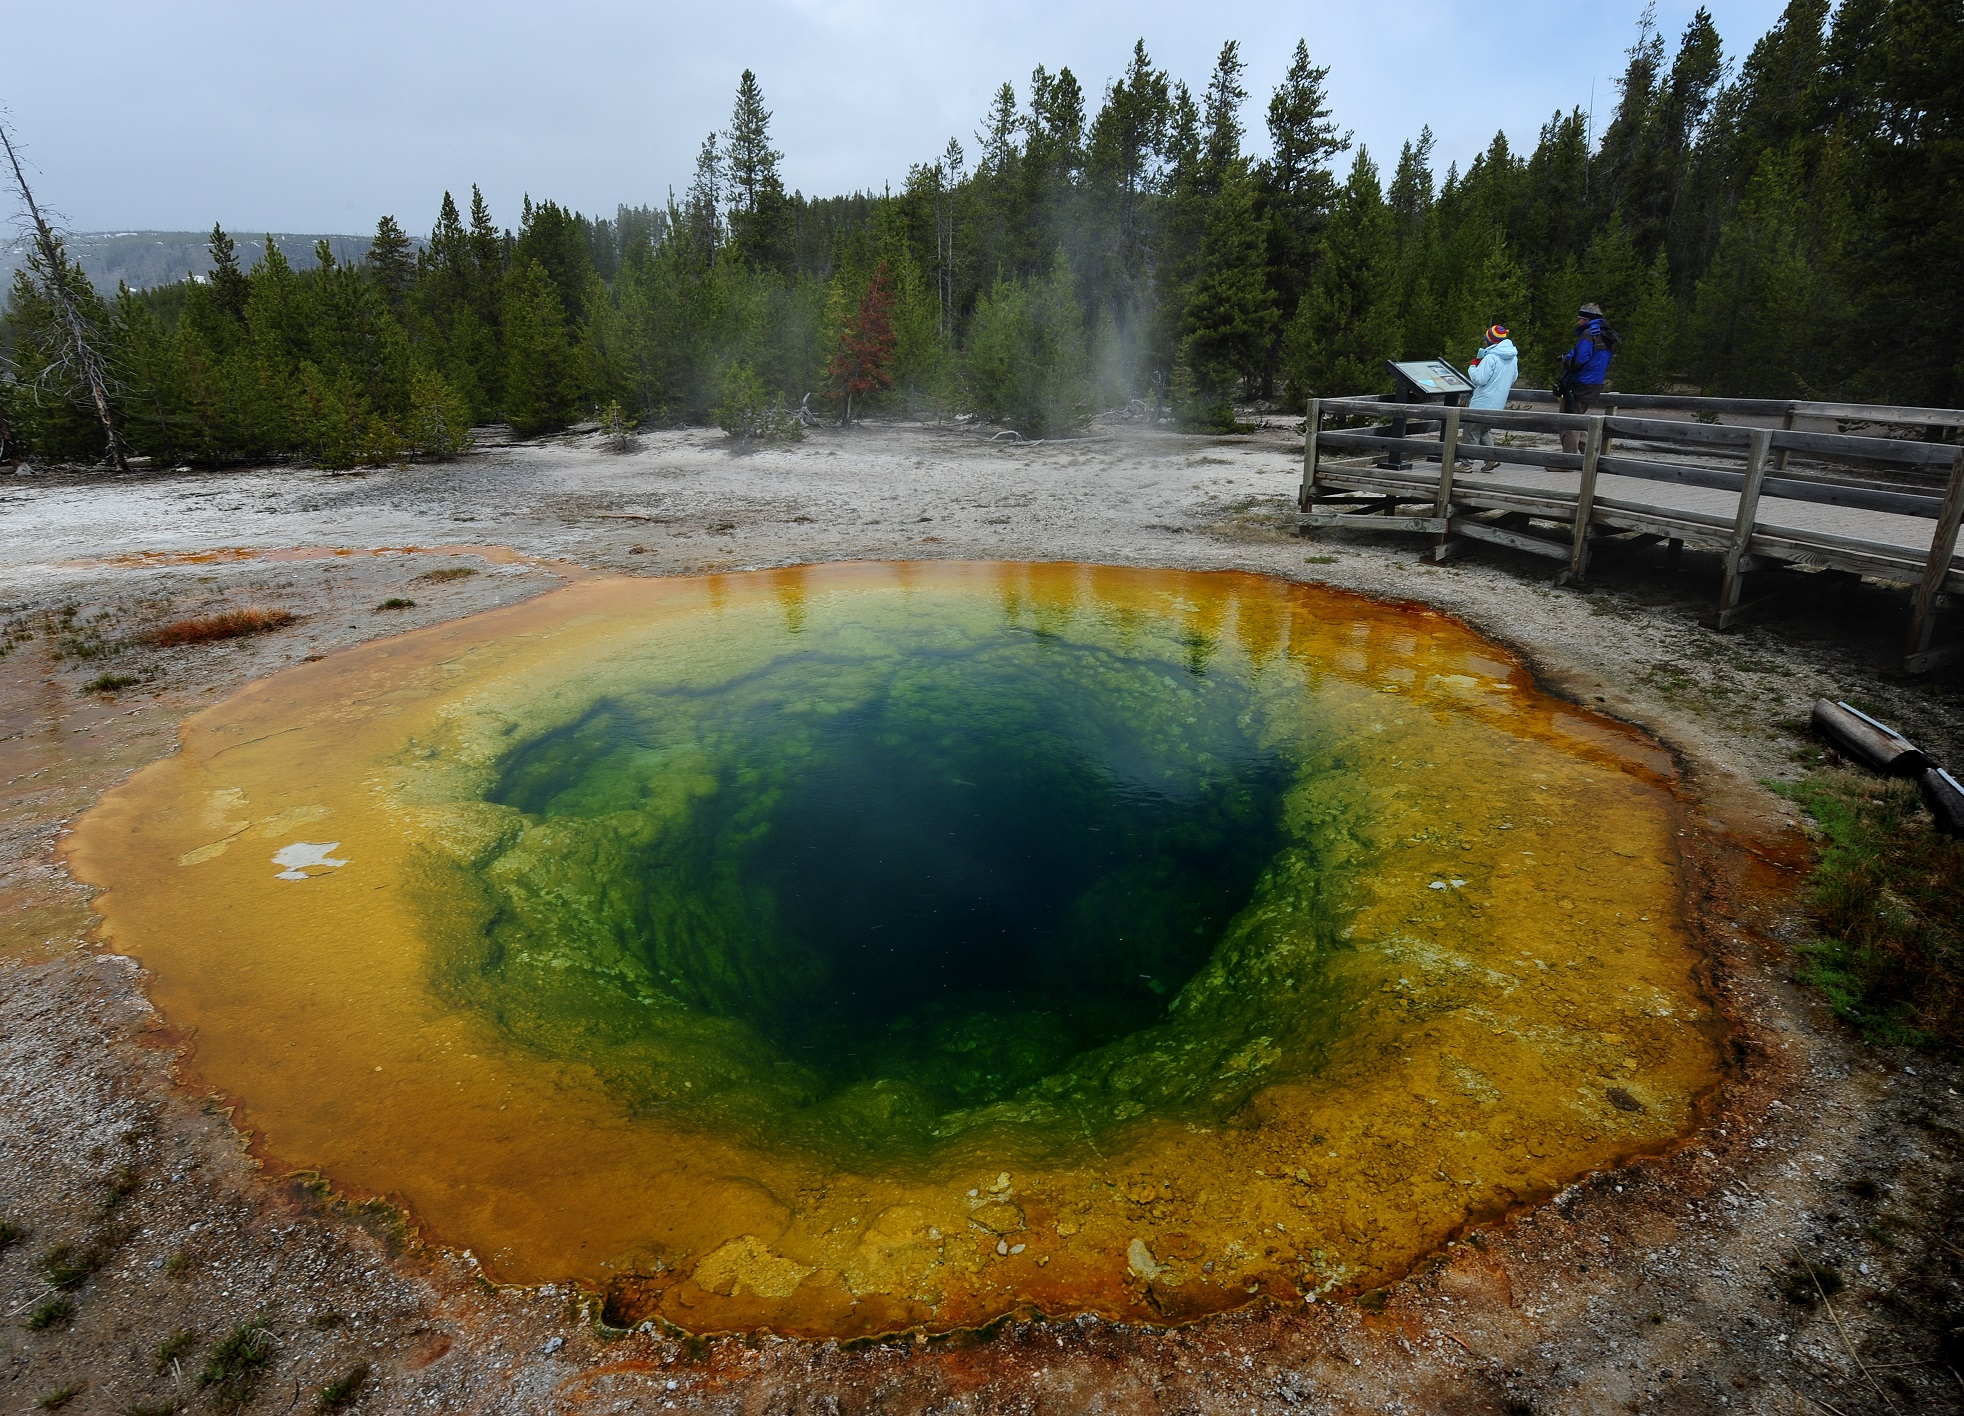 Yellowstone Geyser Vomits up 80 Years of Trash, Say Park Officials